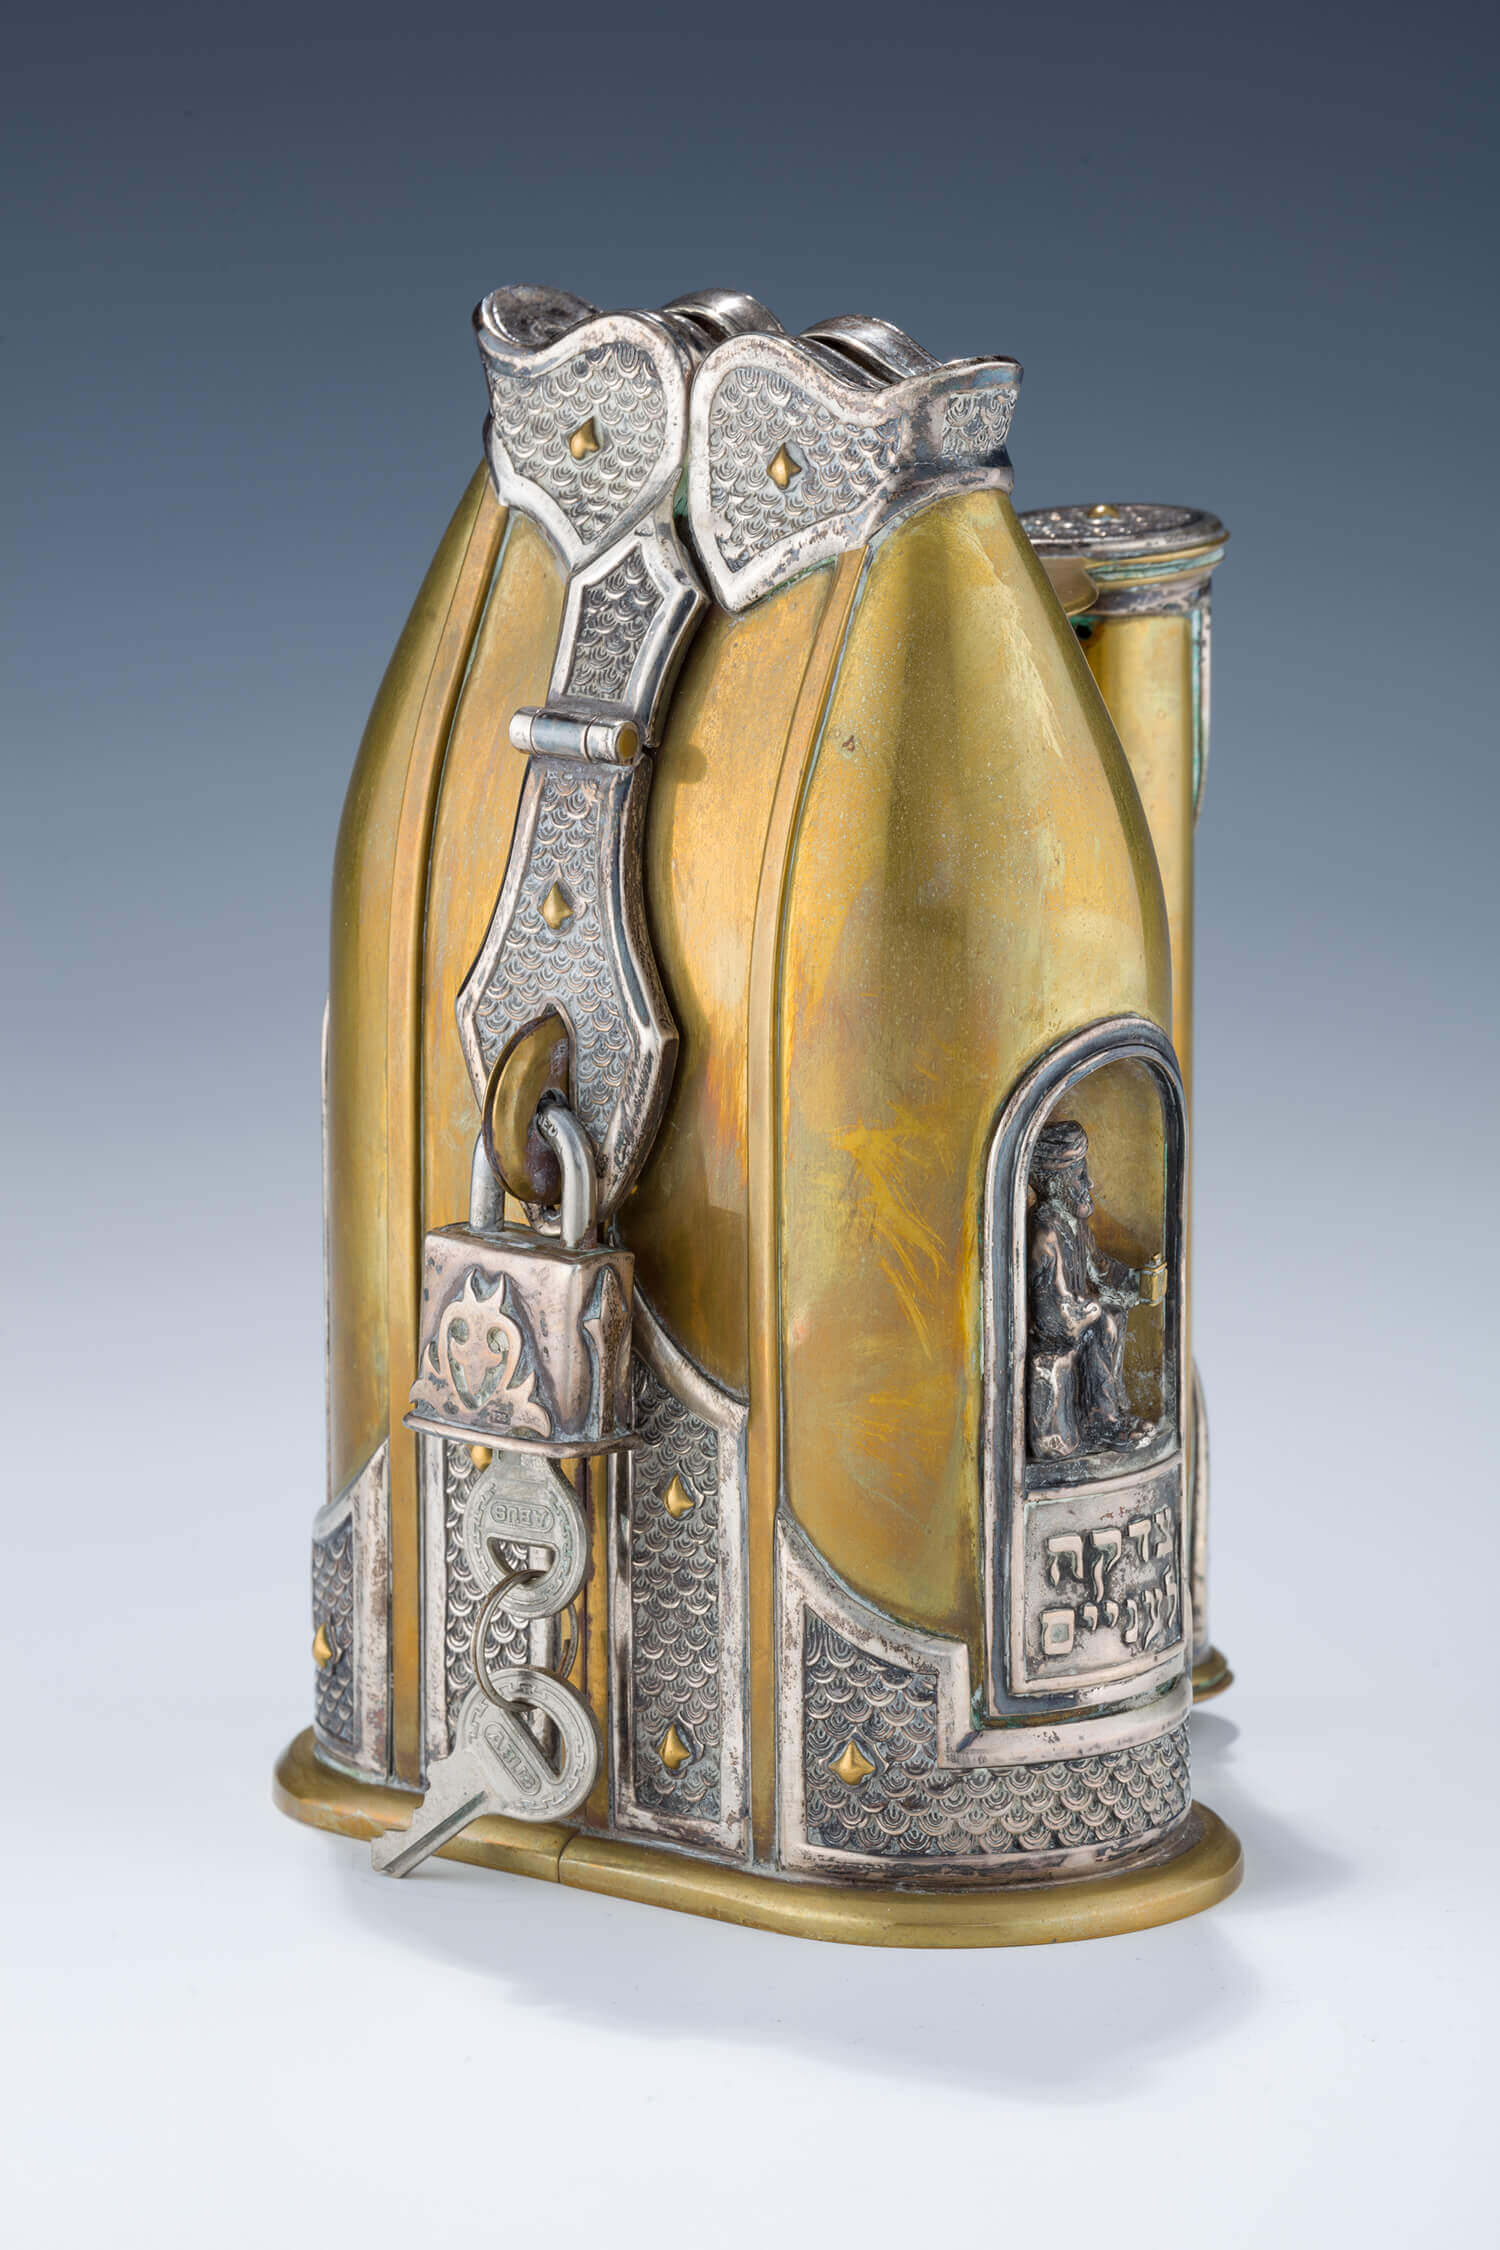 099. A LARGE STERLING AND BRASS CHARITY BOX BY DUDEK SWED